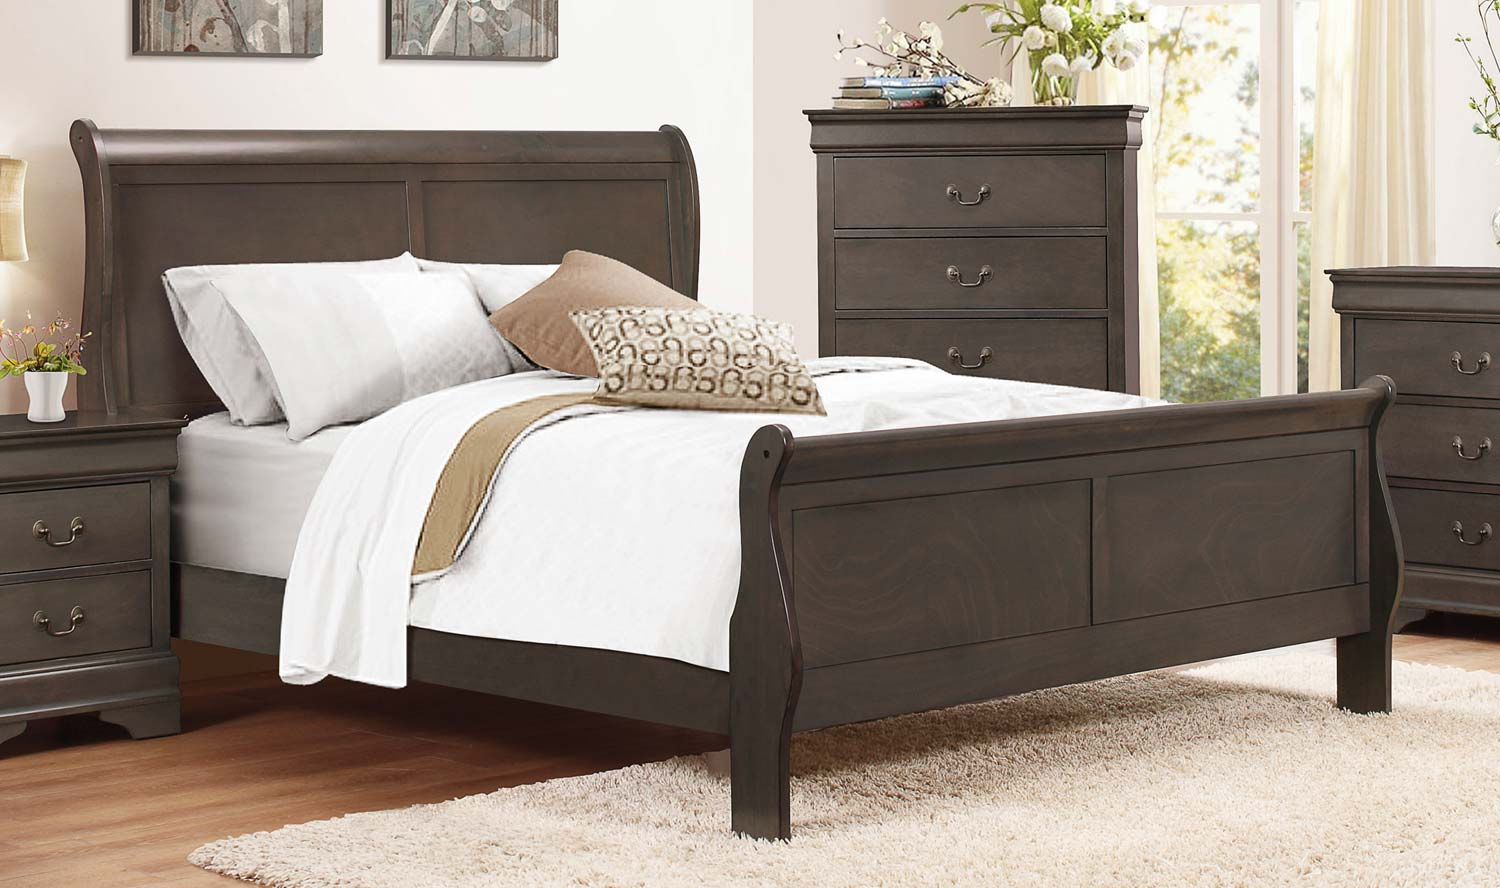 Superbe Bedroom Set U2013 Dark Wood